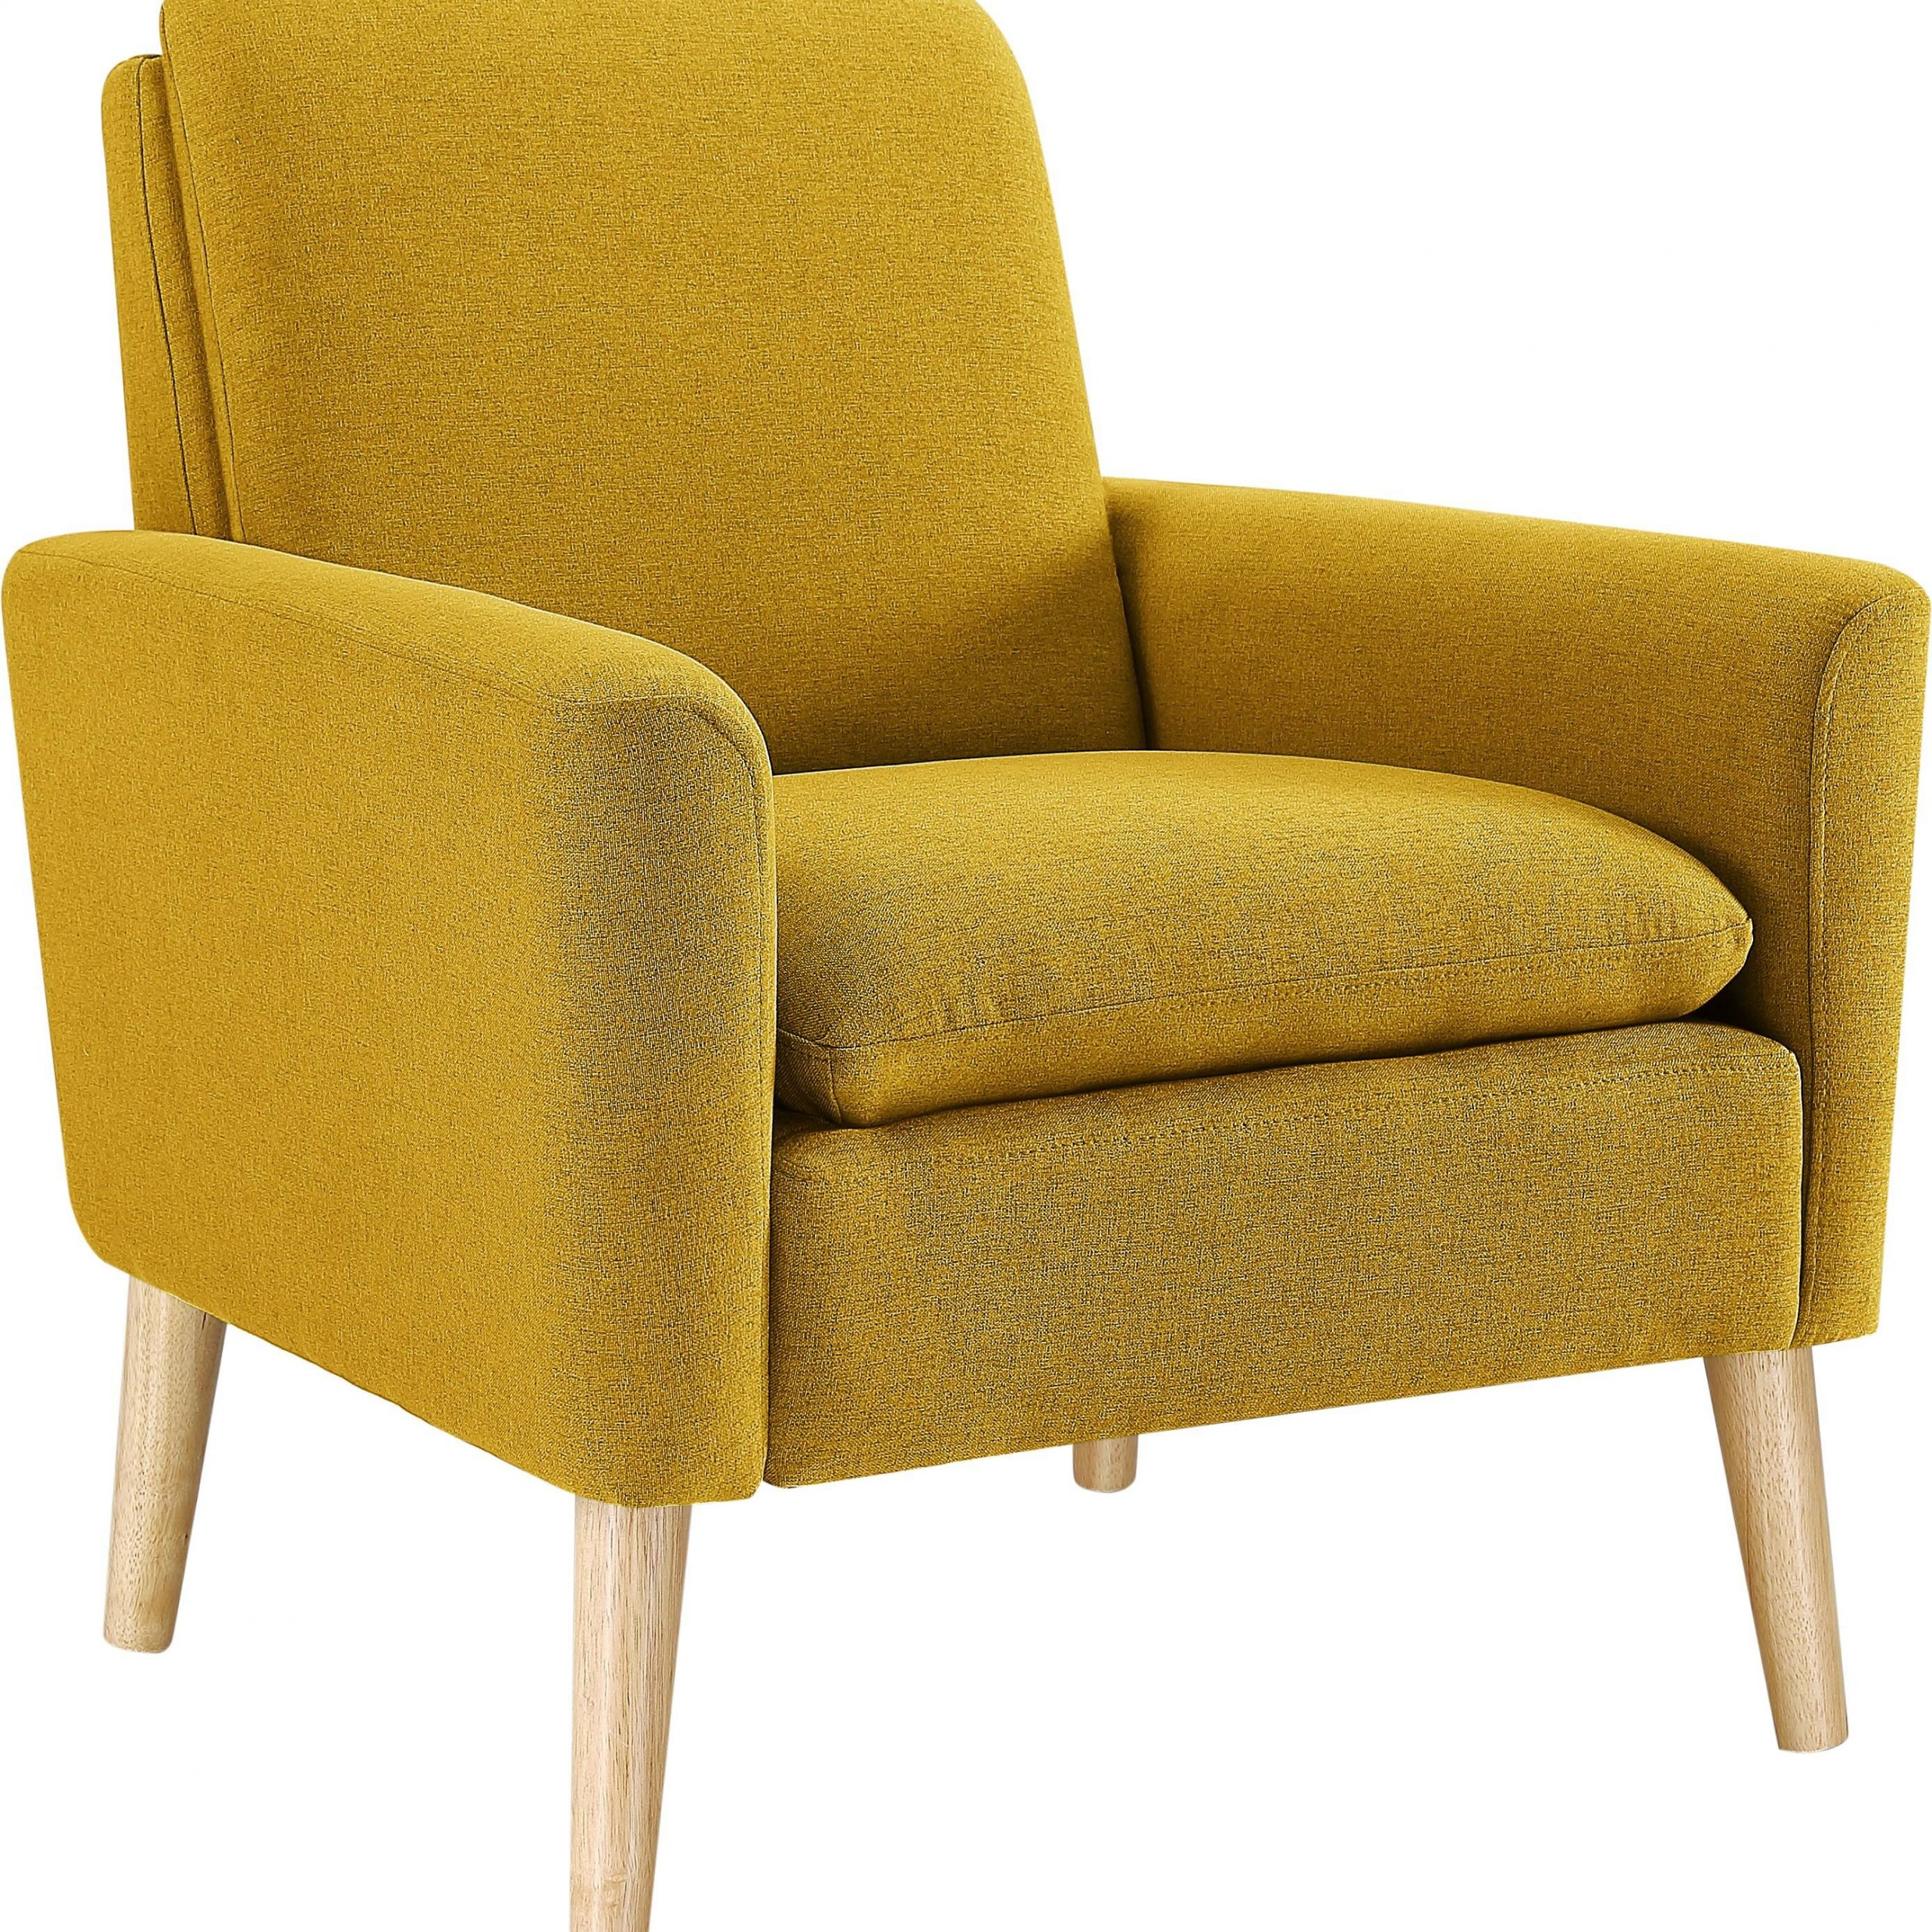 Arm Modern & Contemporary Accent Chairs You'Ll Love In 2021 Pertaining To Lakeville Armchairs (View 12 of 15)